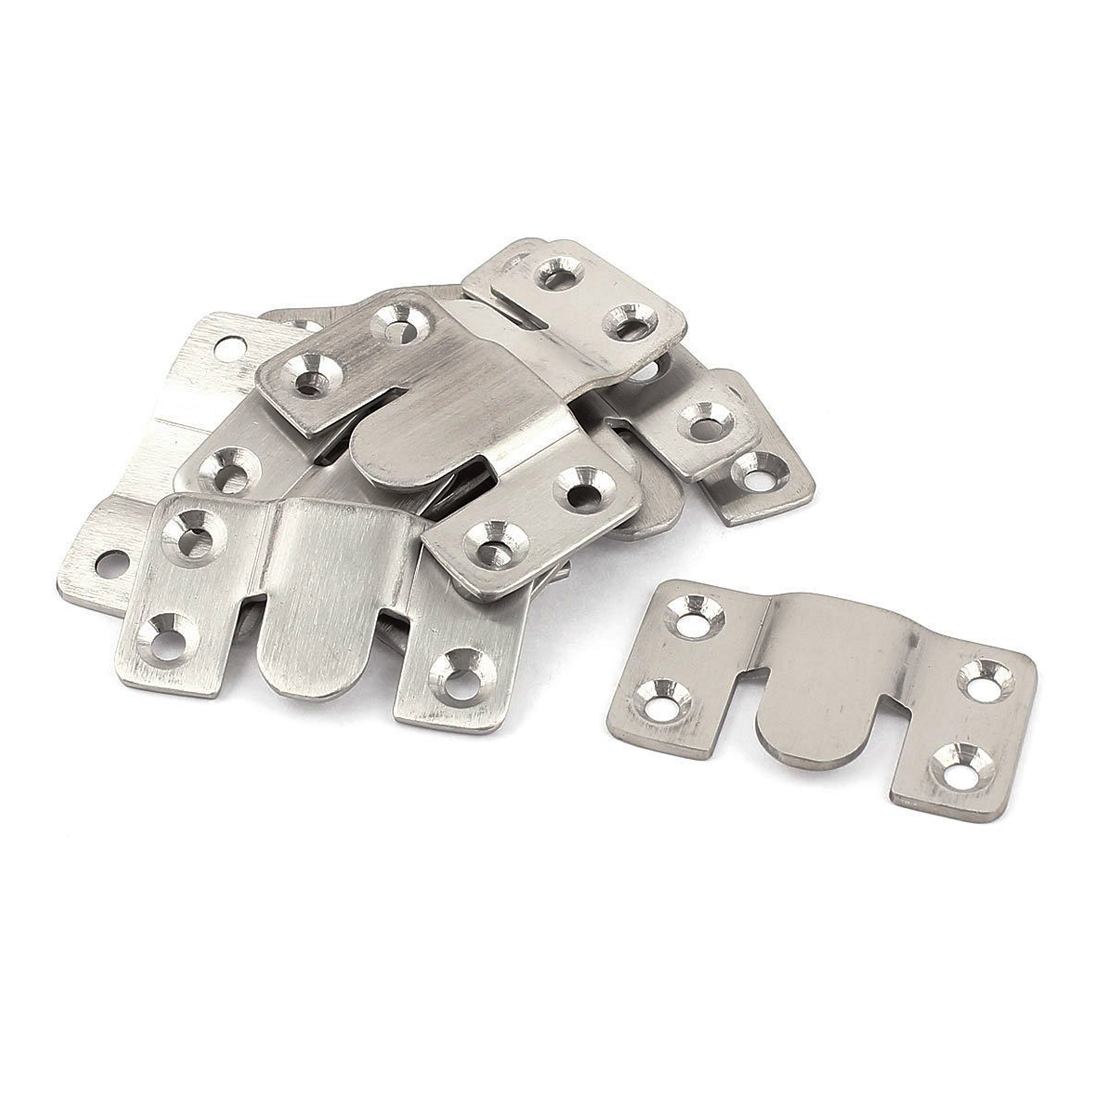 DHDL-Furniture Sectional Interlock Style Sofa Connector 10pcs Silver Tone(China (Mainland))